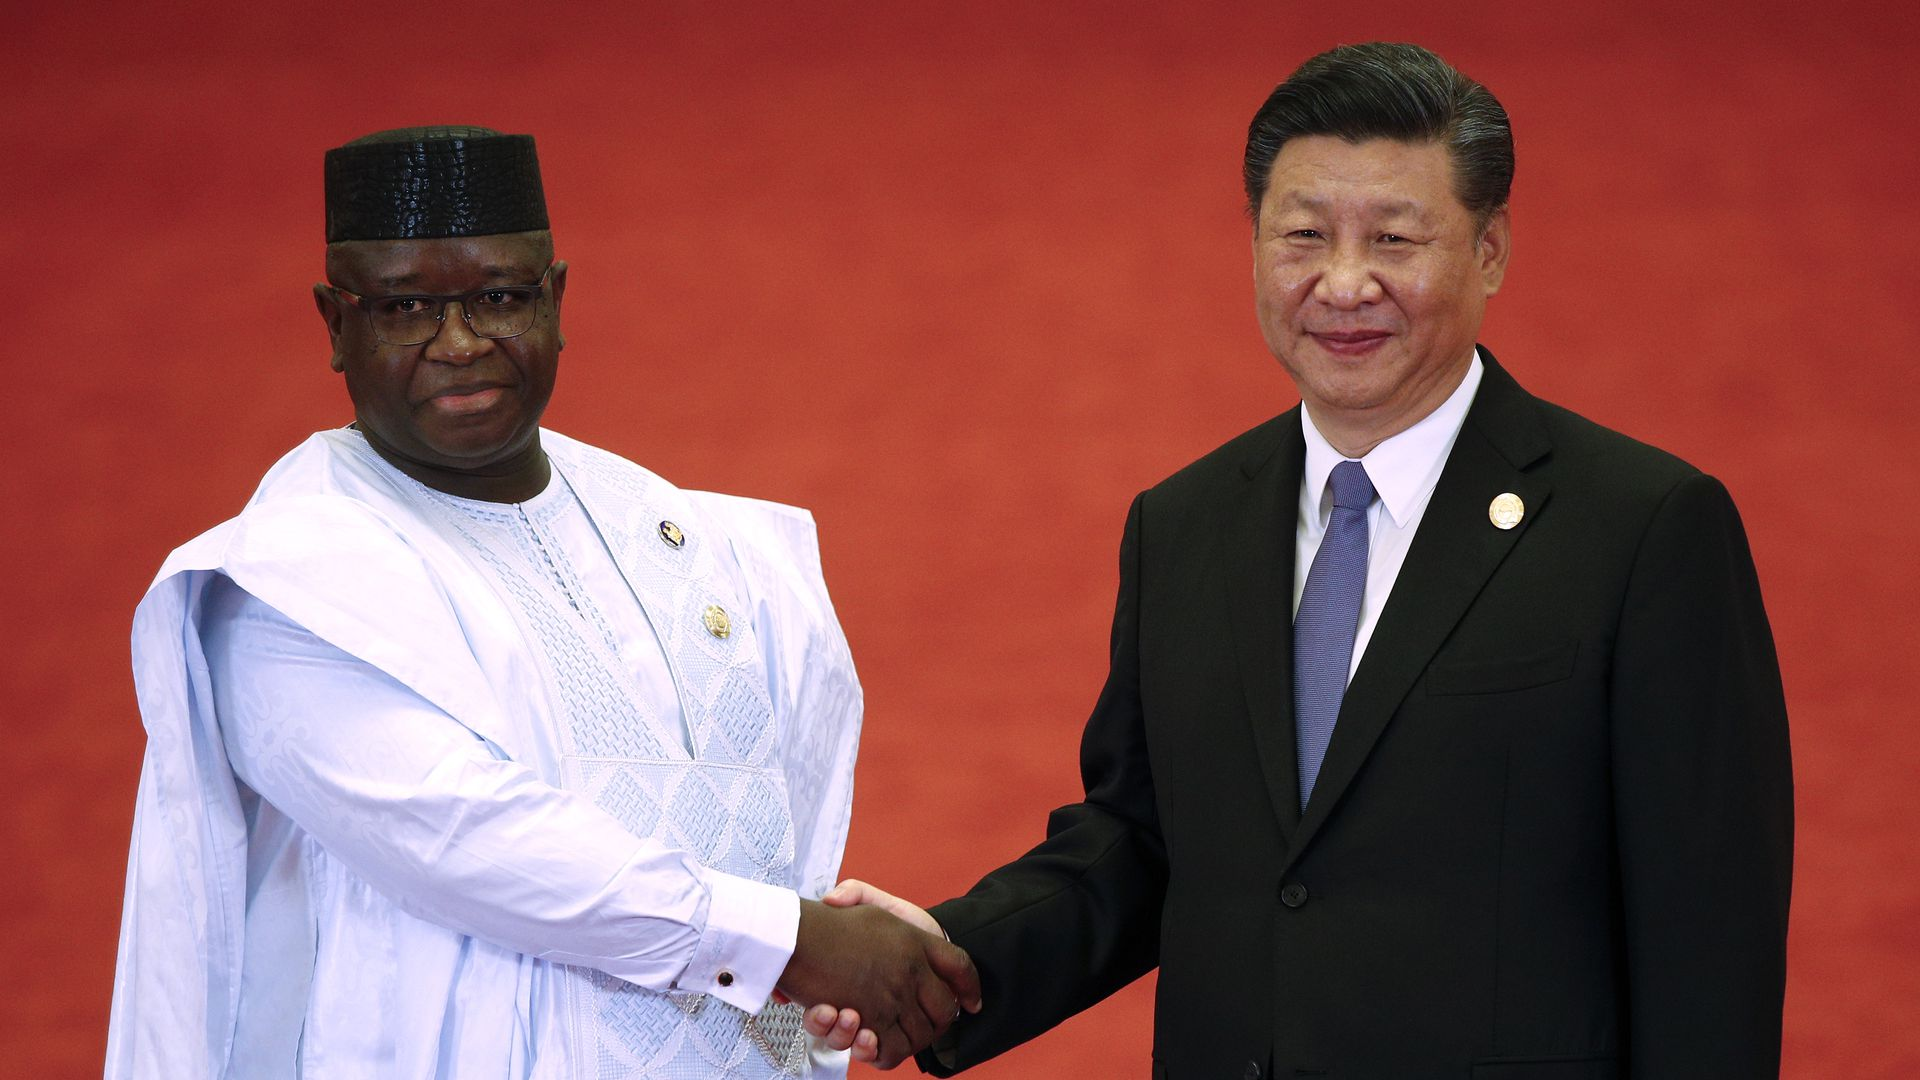 Sierra Leone President Julius Maada Bio shakes hands with Chinese President Xi Jinping during the Forum on China-Africa Cooperation on September 3, 2018 in Beijing, China.